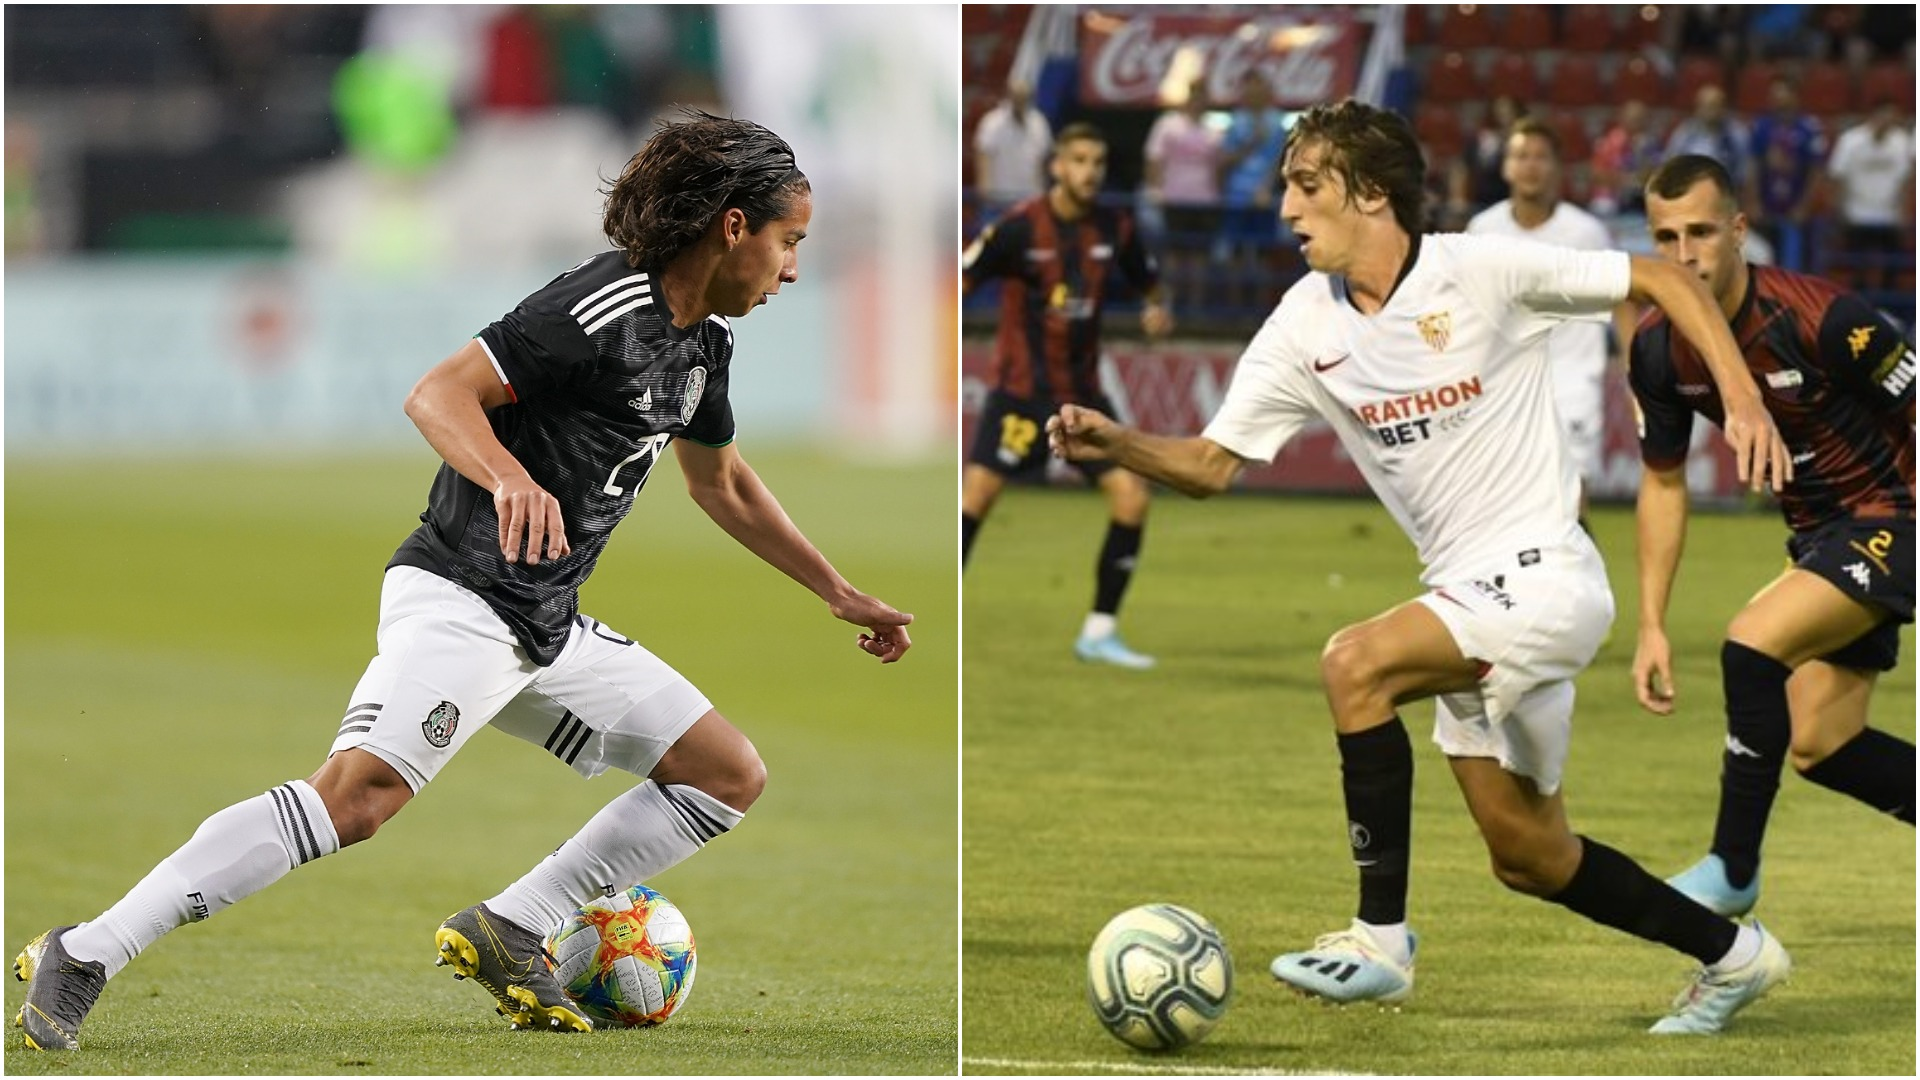 LaLiga 2019-20: Lainez, Bryan and the potential breakout stars